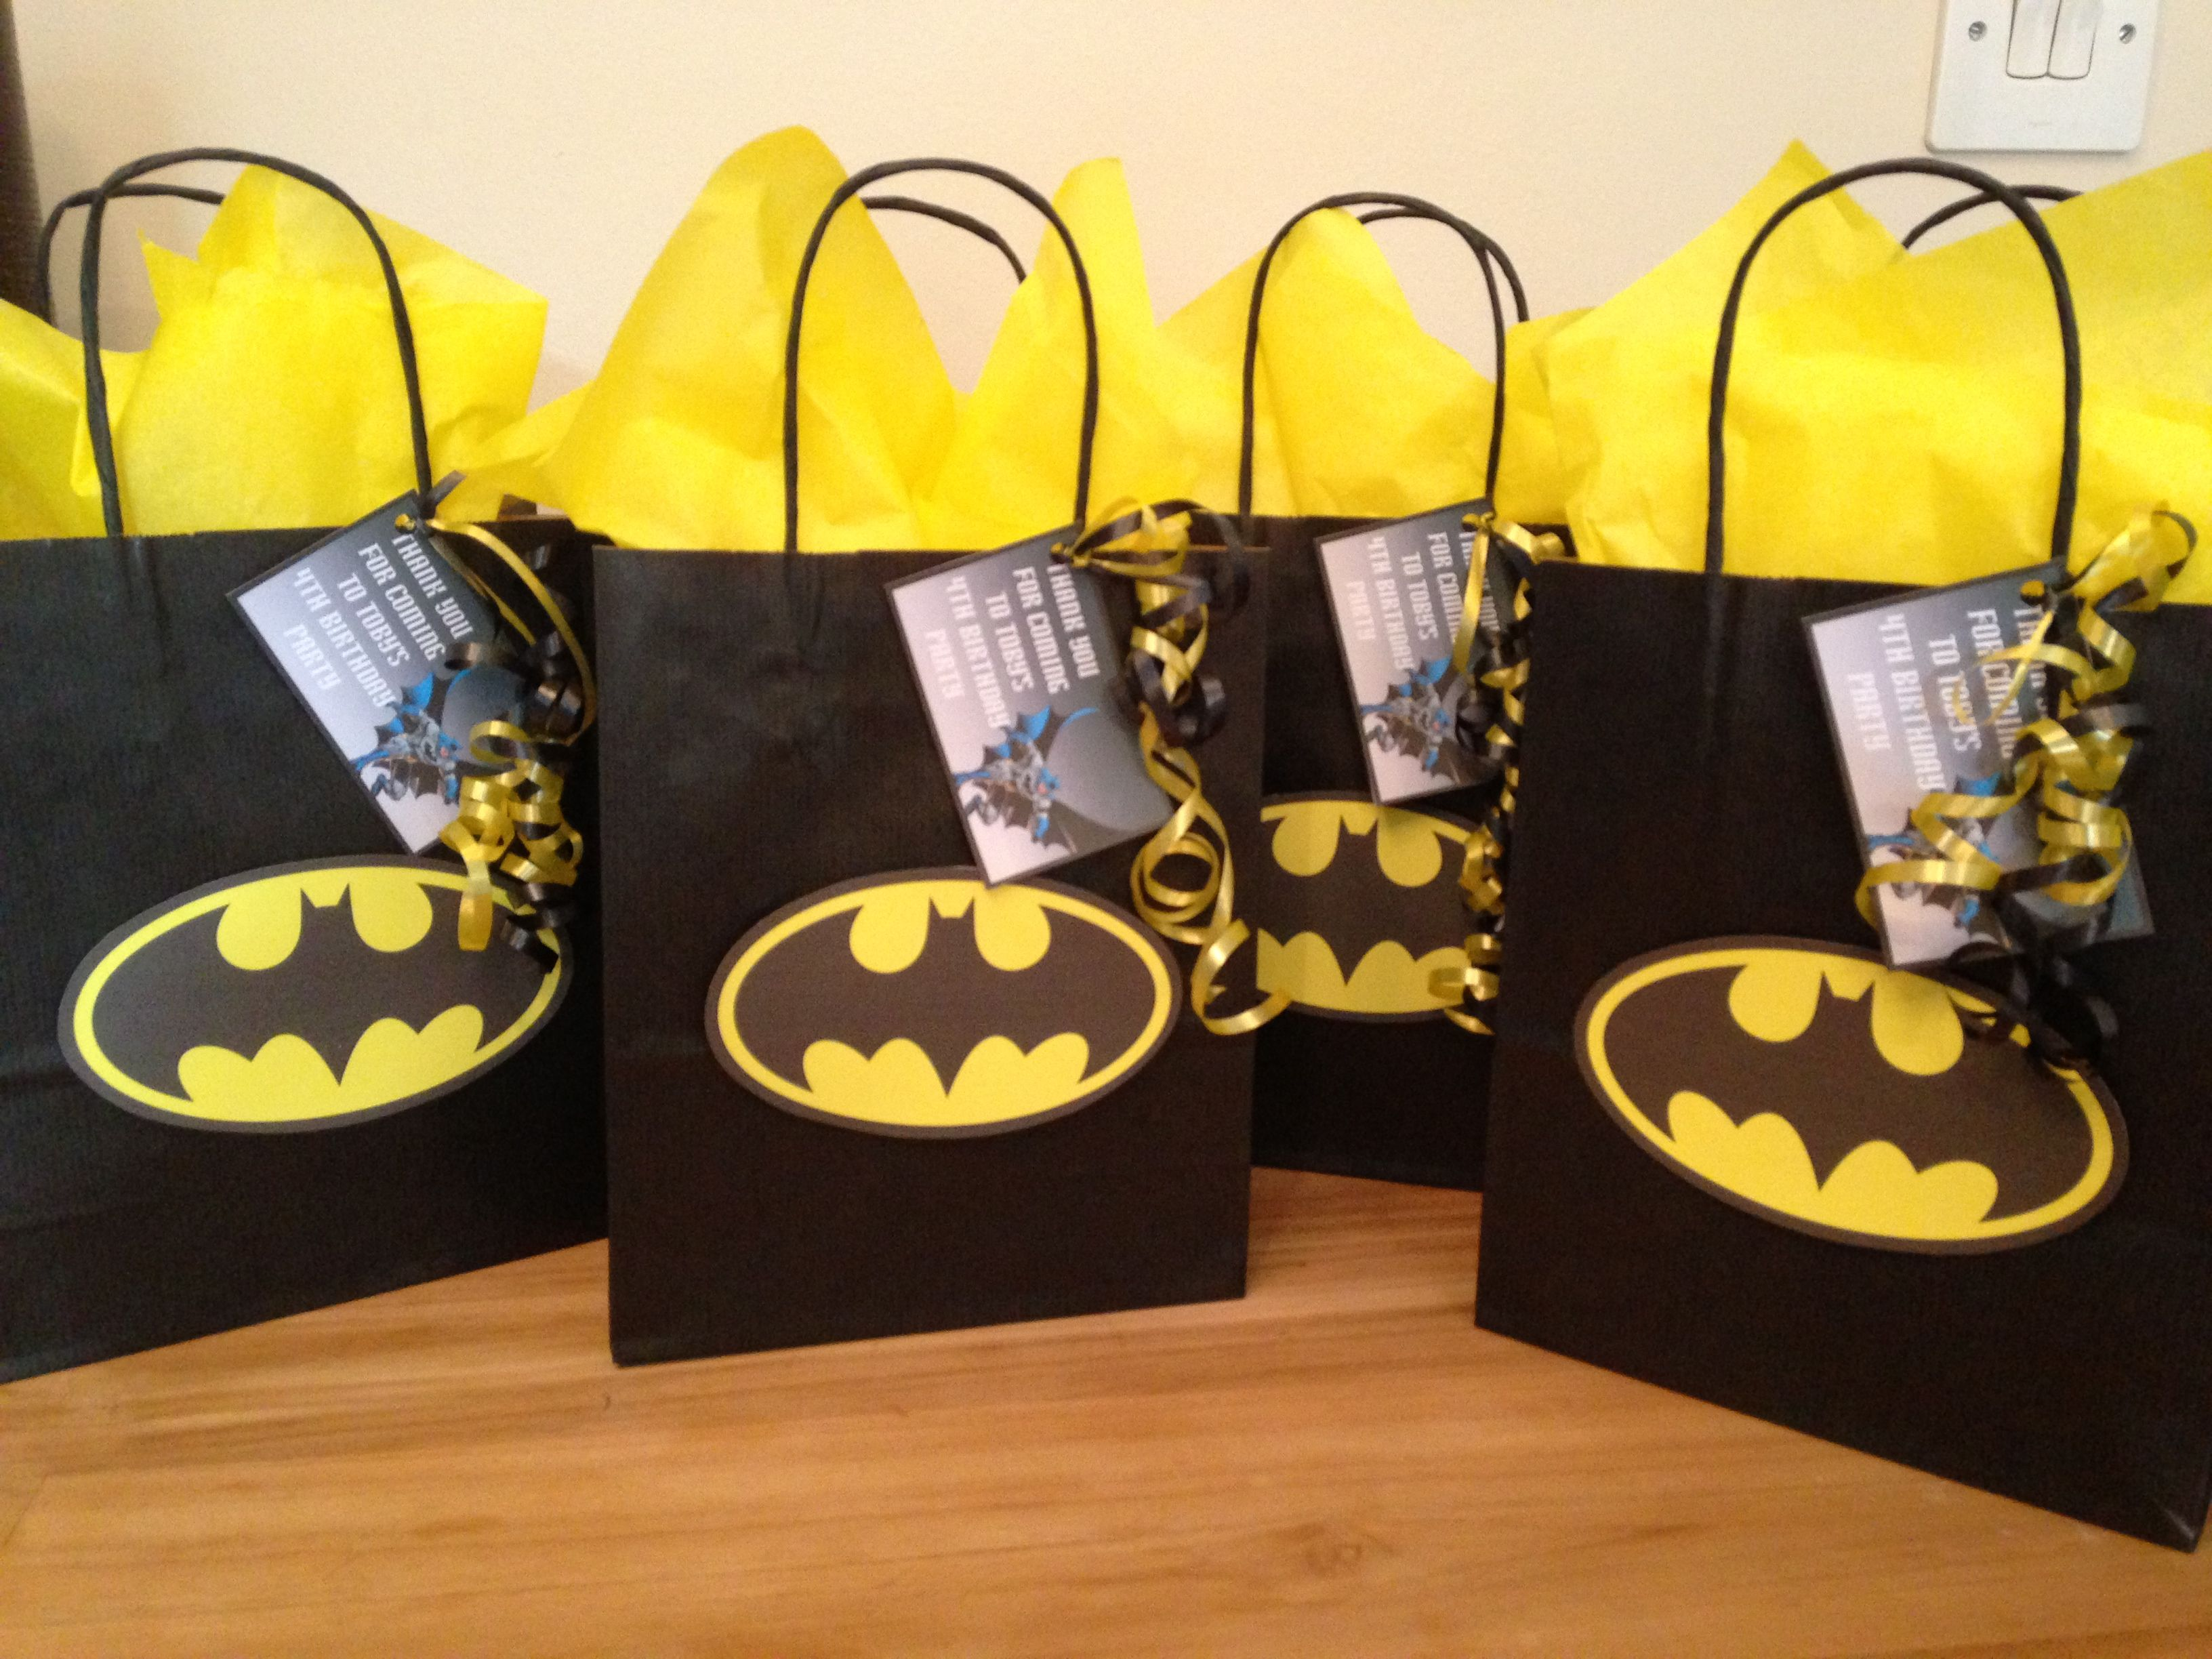 Batman party bags party bags for kids find us on facebook crofty75 batman party bags party bags for kids find us on facebook crofty75aol pronofoot35fo Choice Image